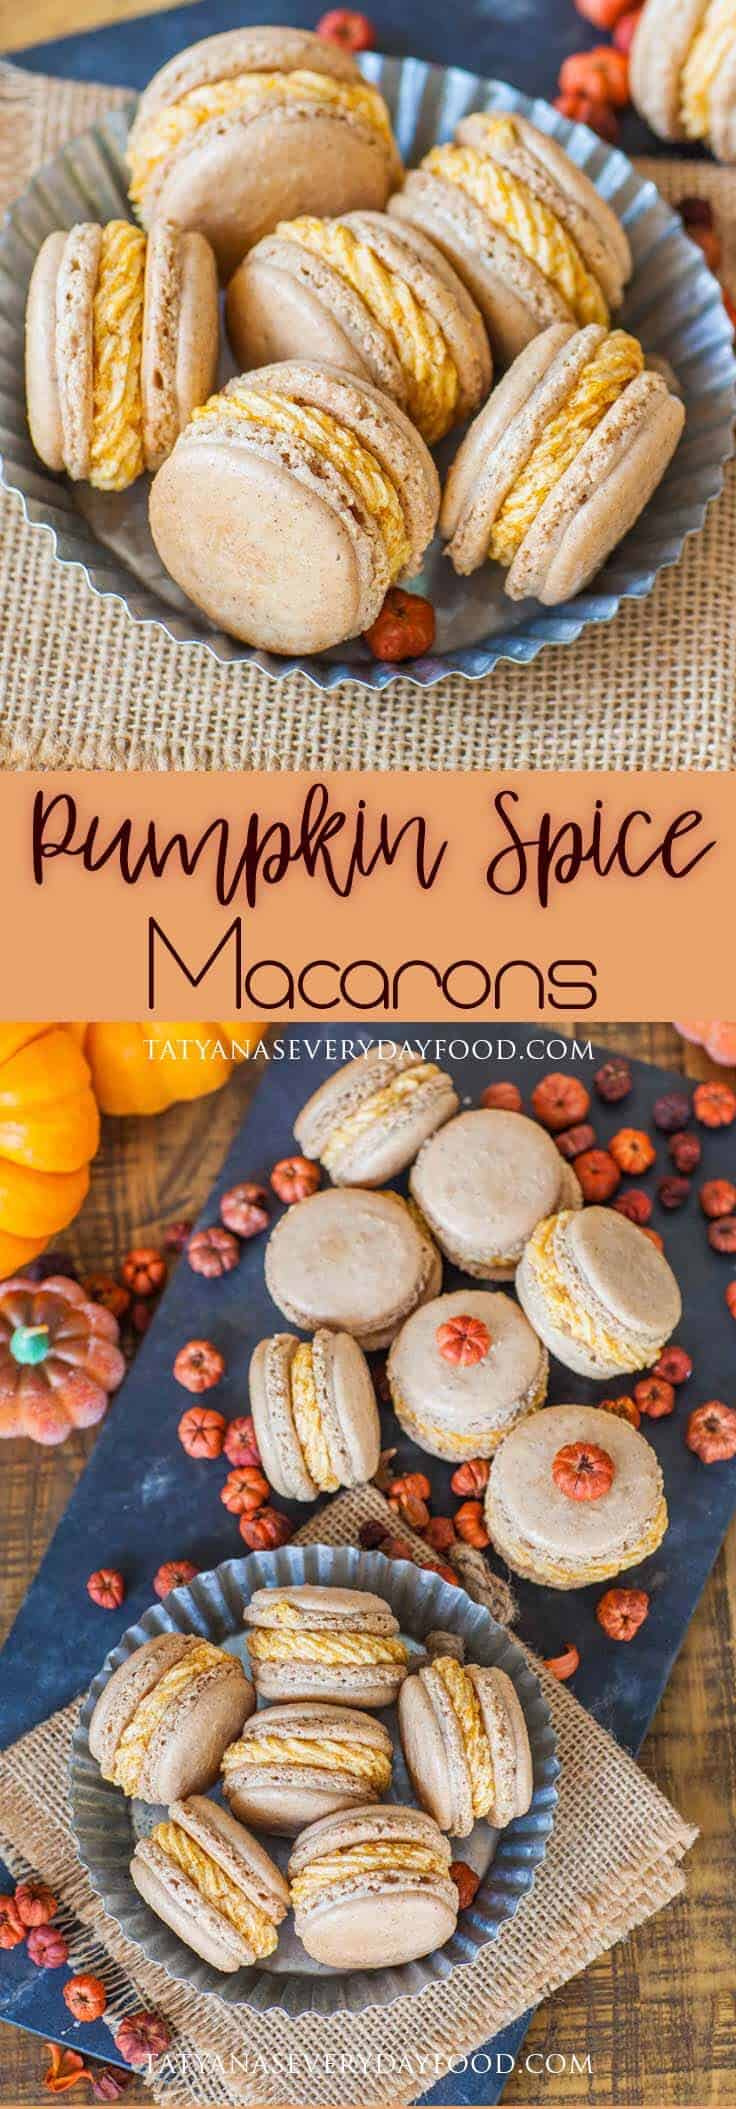 Pumpkin Spice Macarons Recipe with video